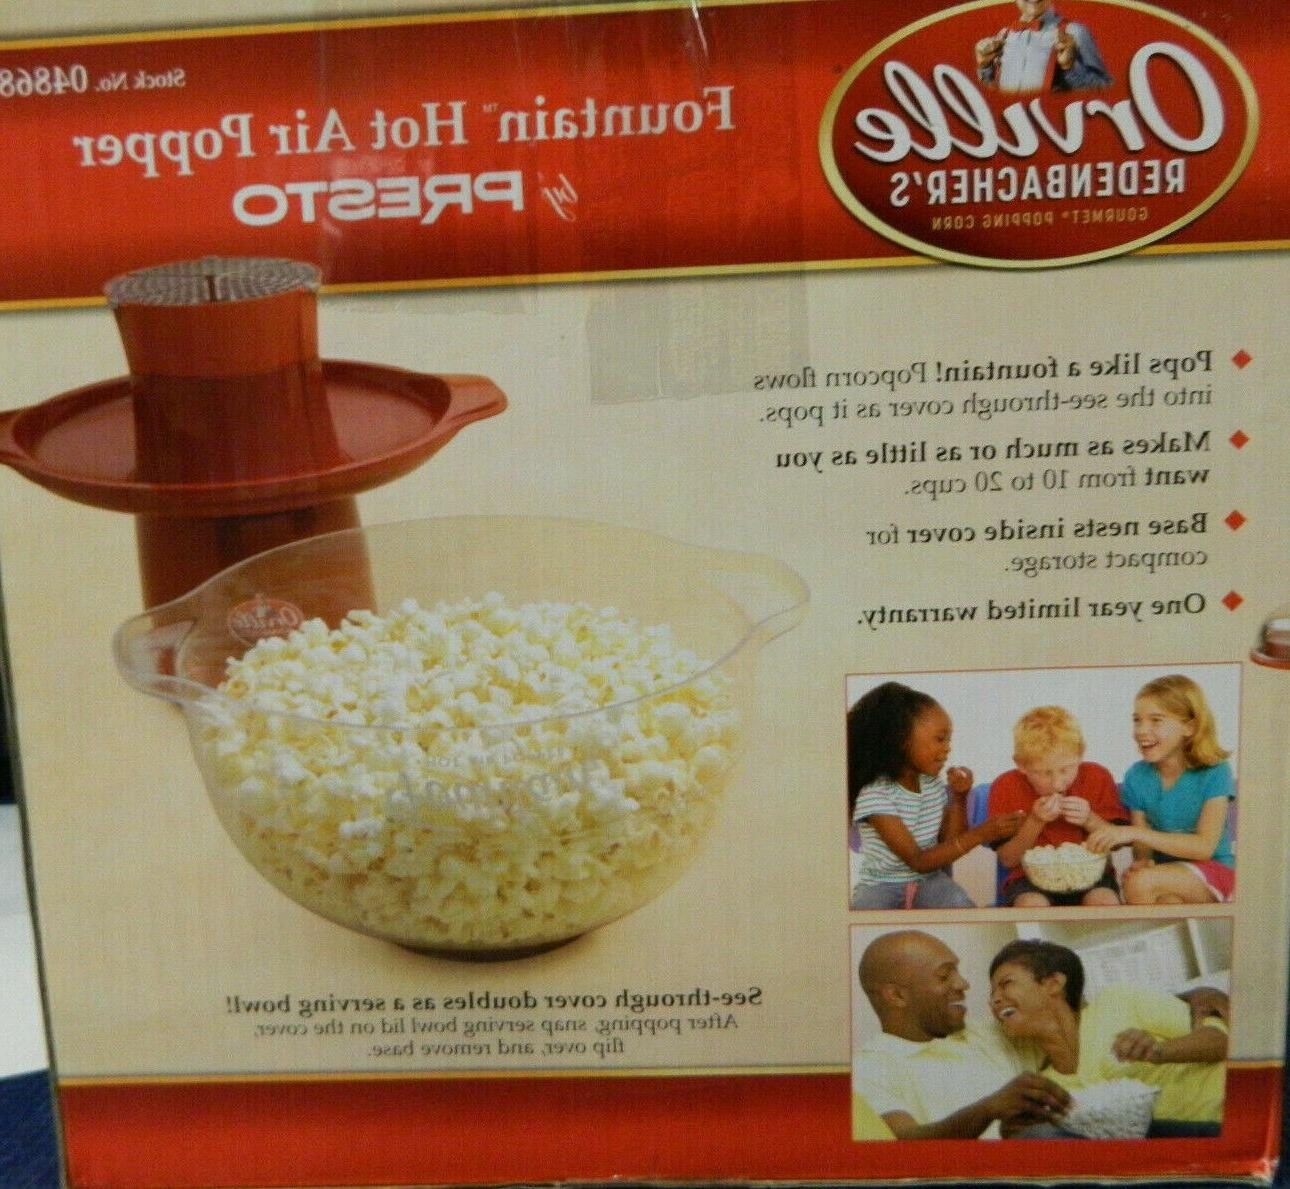 NEW REDENBACHER'S FOUNTAIN POPPER BY